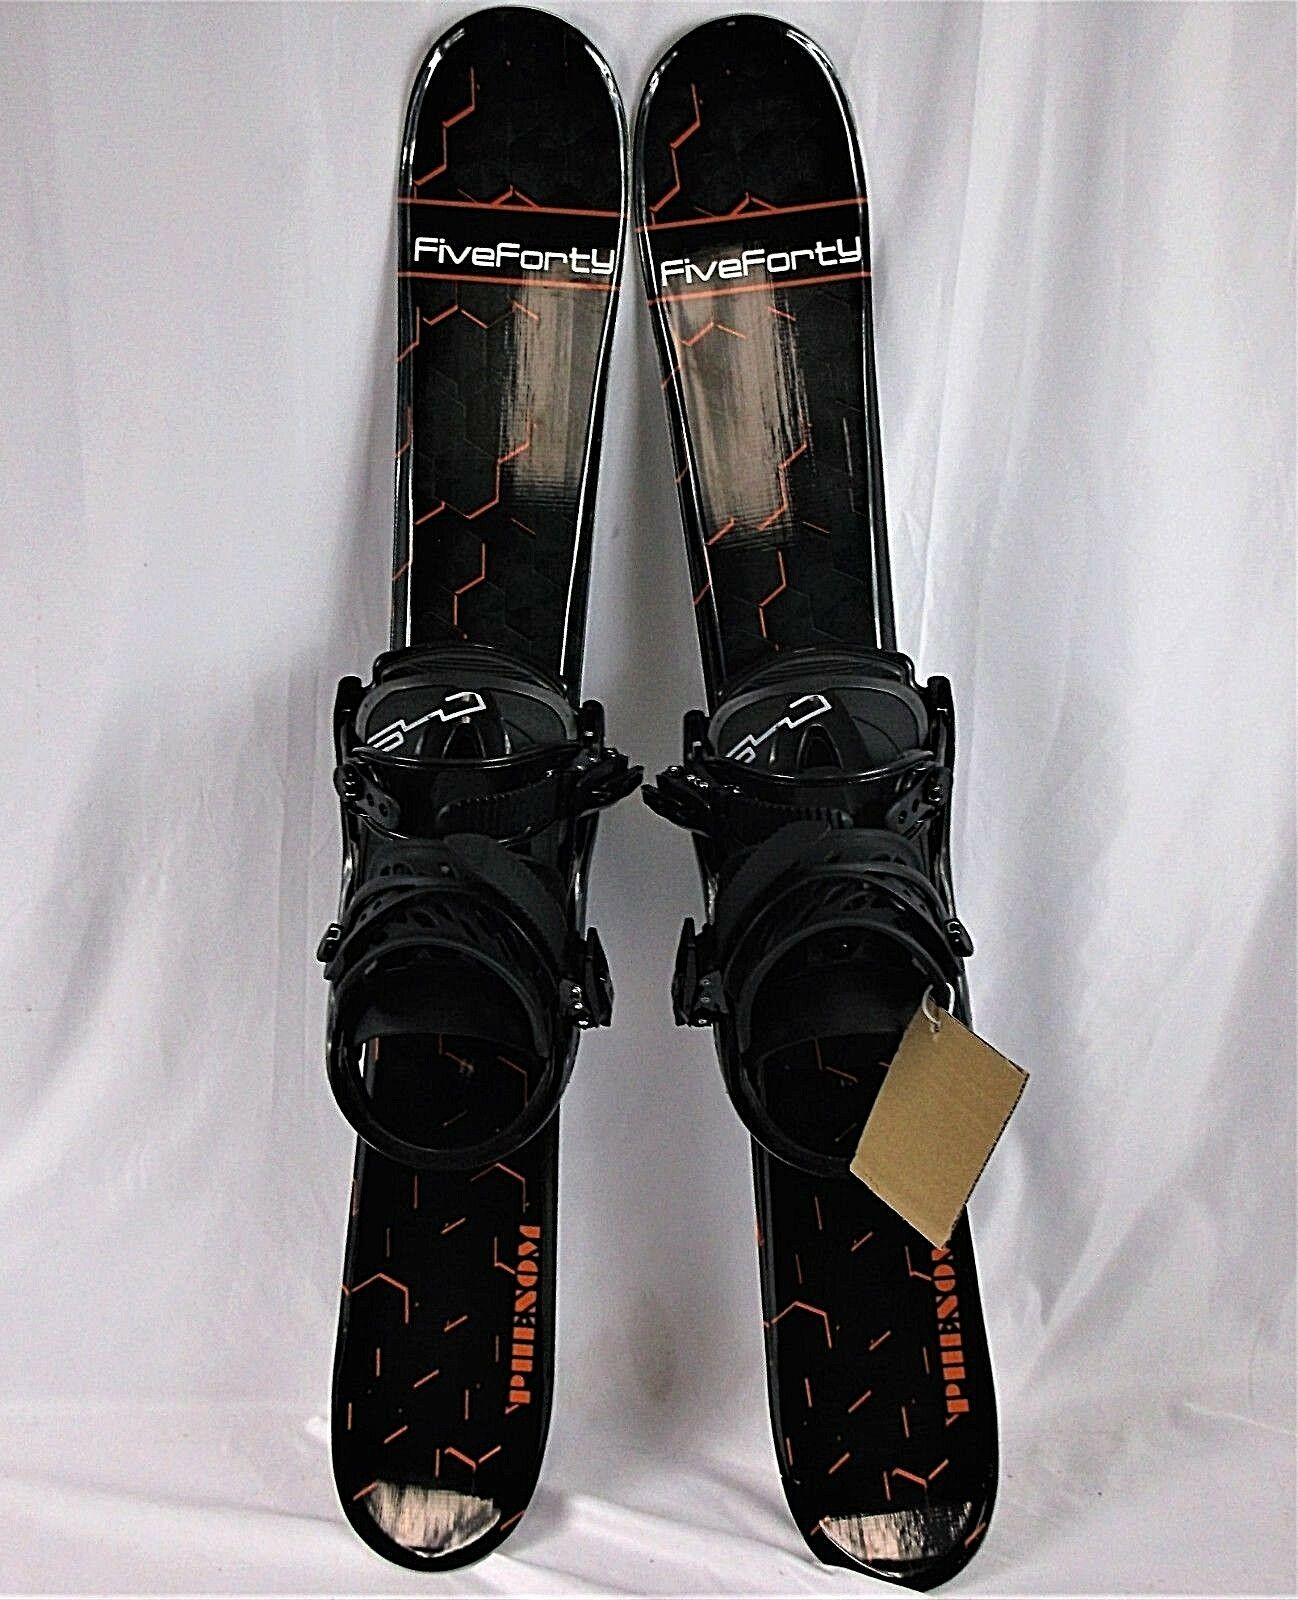 Five-Forty 90 cm Phenom Blades w  FiveForty Snowboard Bindings